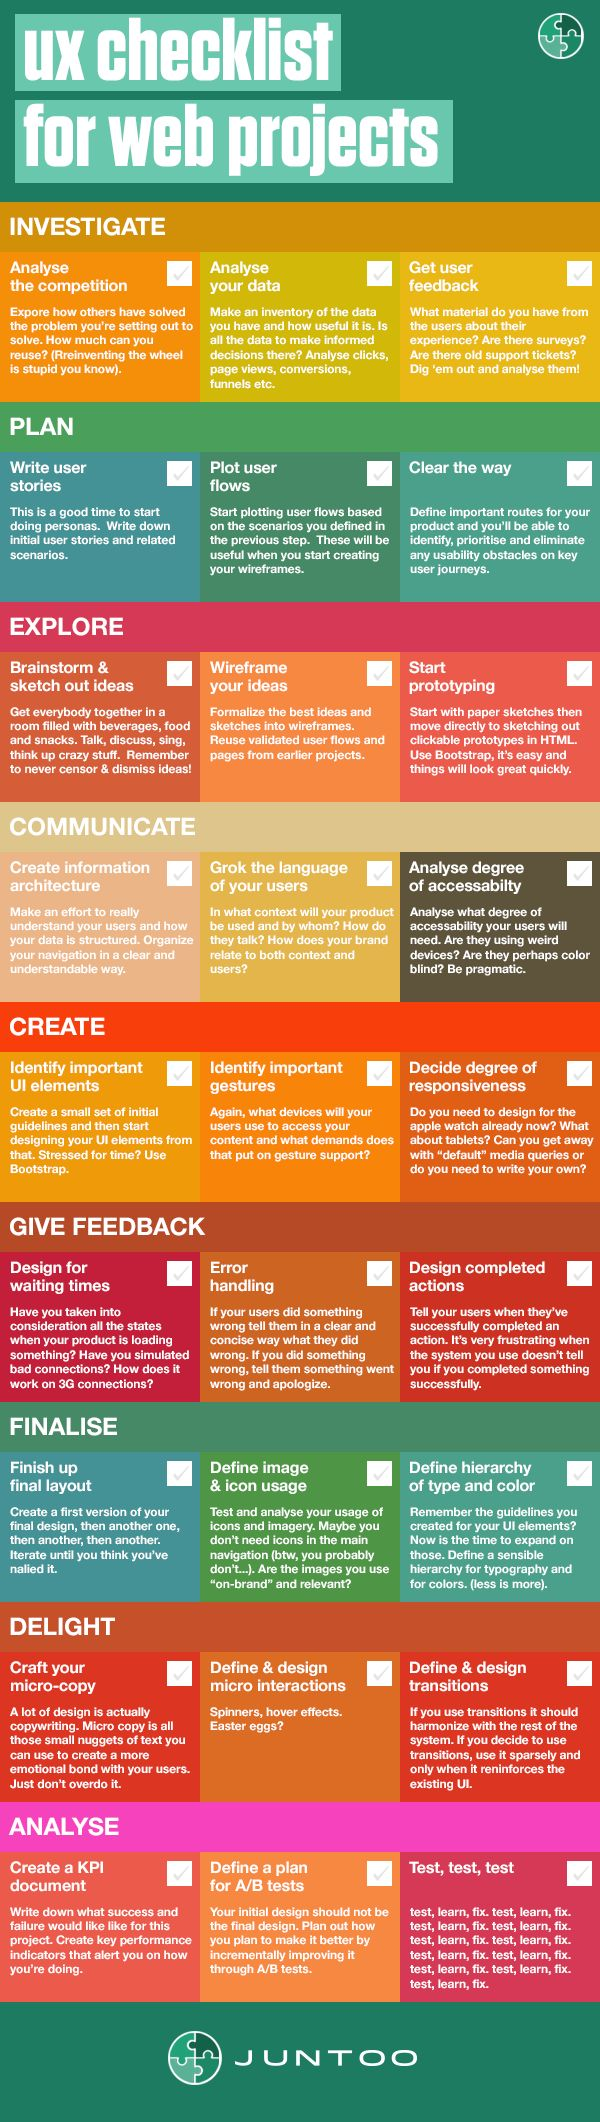 In this UX checklist we list the most important UX processes for any web project. Download it as pdf and start your next web project with this UX checklist!. If you like UX, design, or design thinking, check out theuxblog.com podcast https://itunes.apple.com/us/podcast/ux-blog-user-experience-design/id1127946001?mt=2